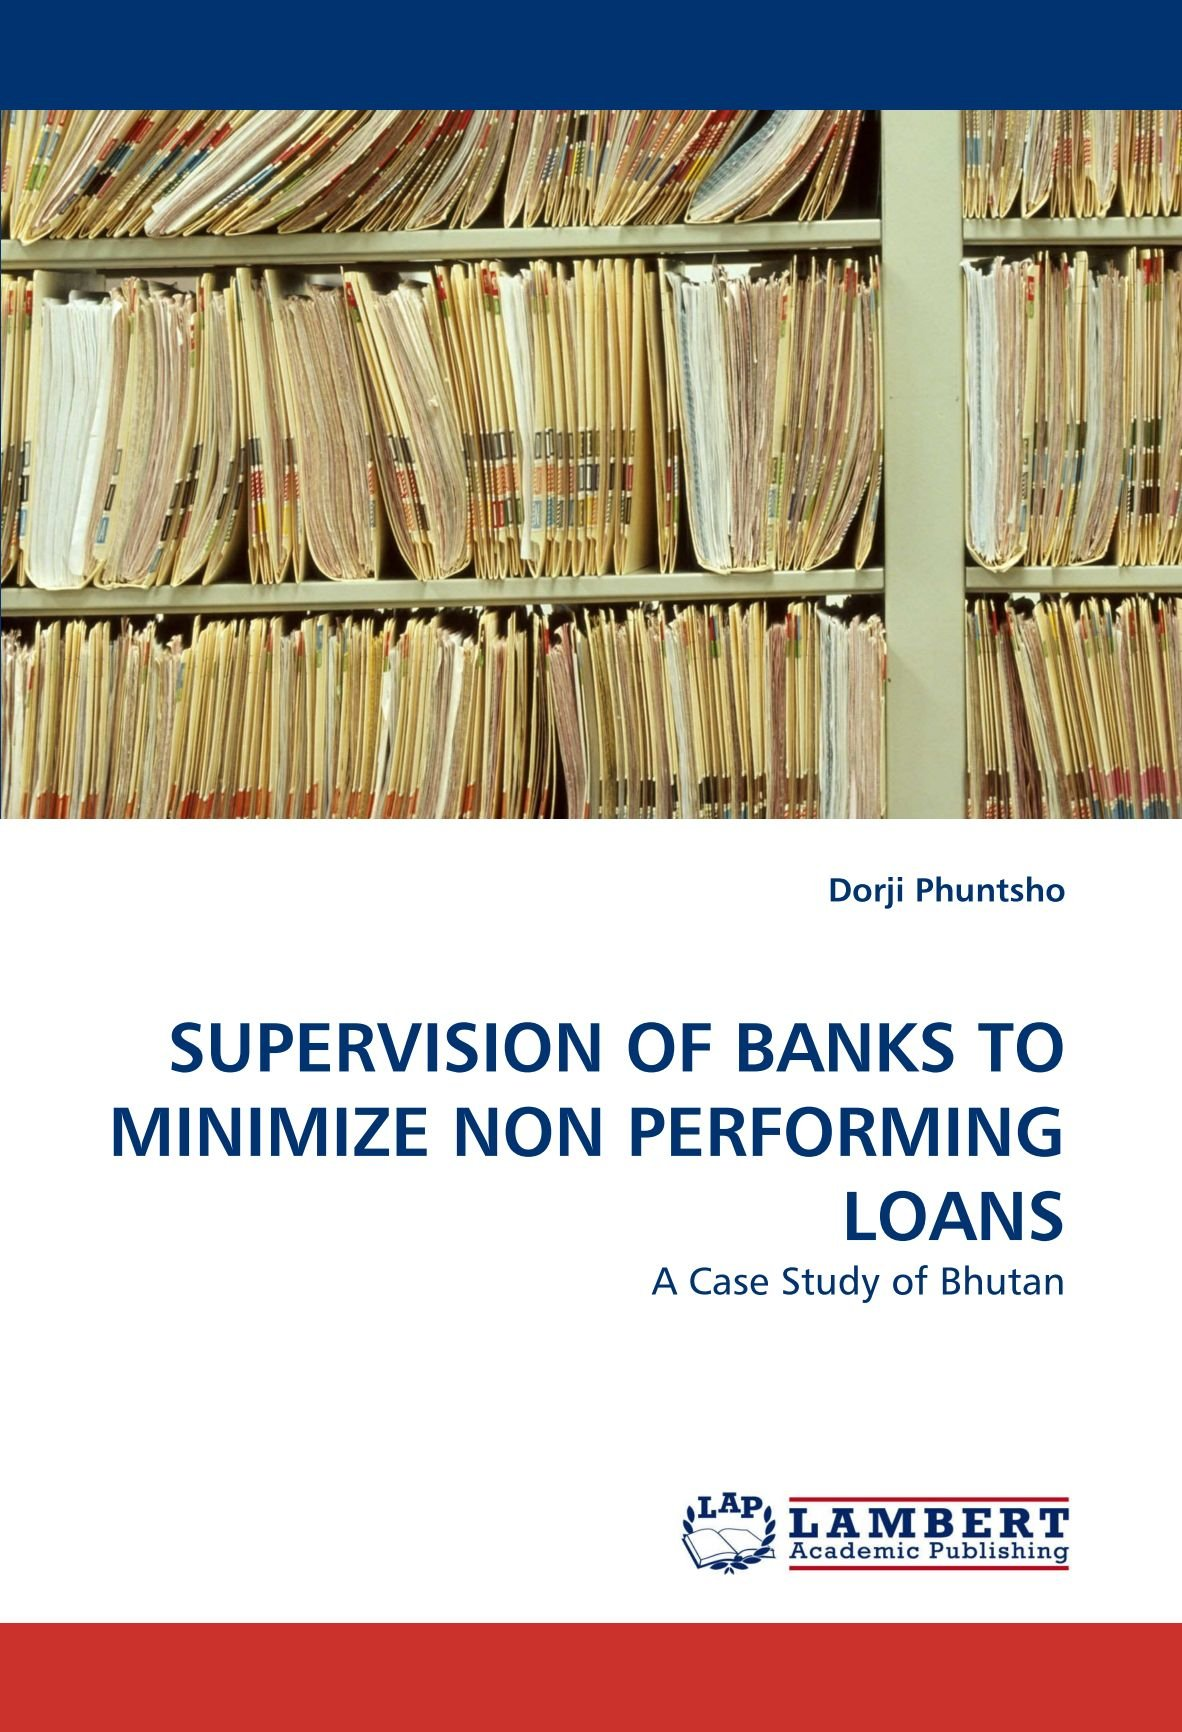 Download SUPERVISION OF BANKS TO MINIMIZE NON PERFORMING LOANS: A Case Study of Bhutan ebook